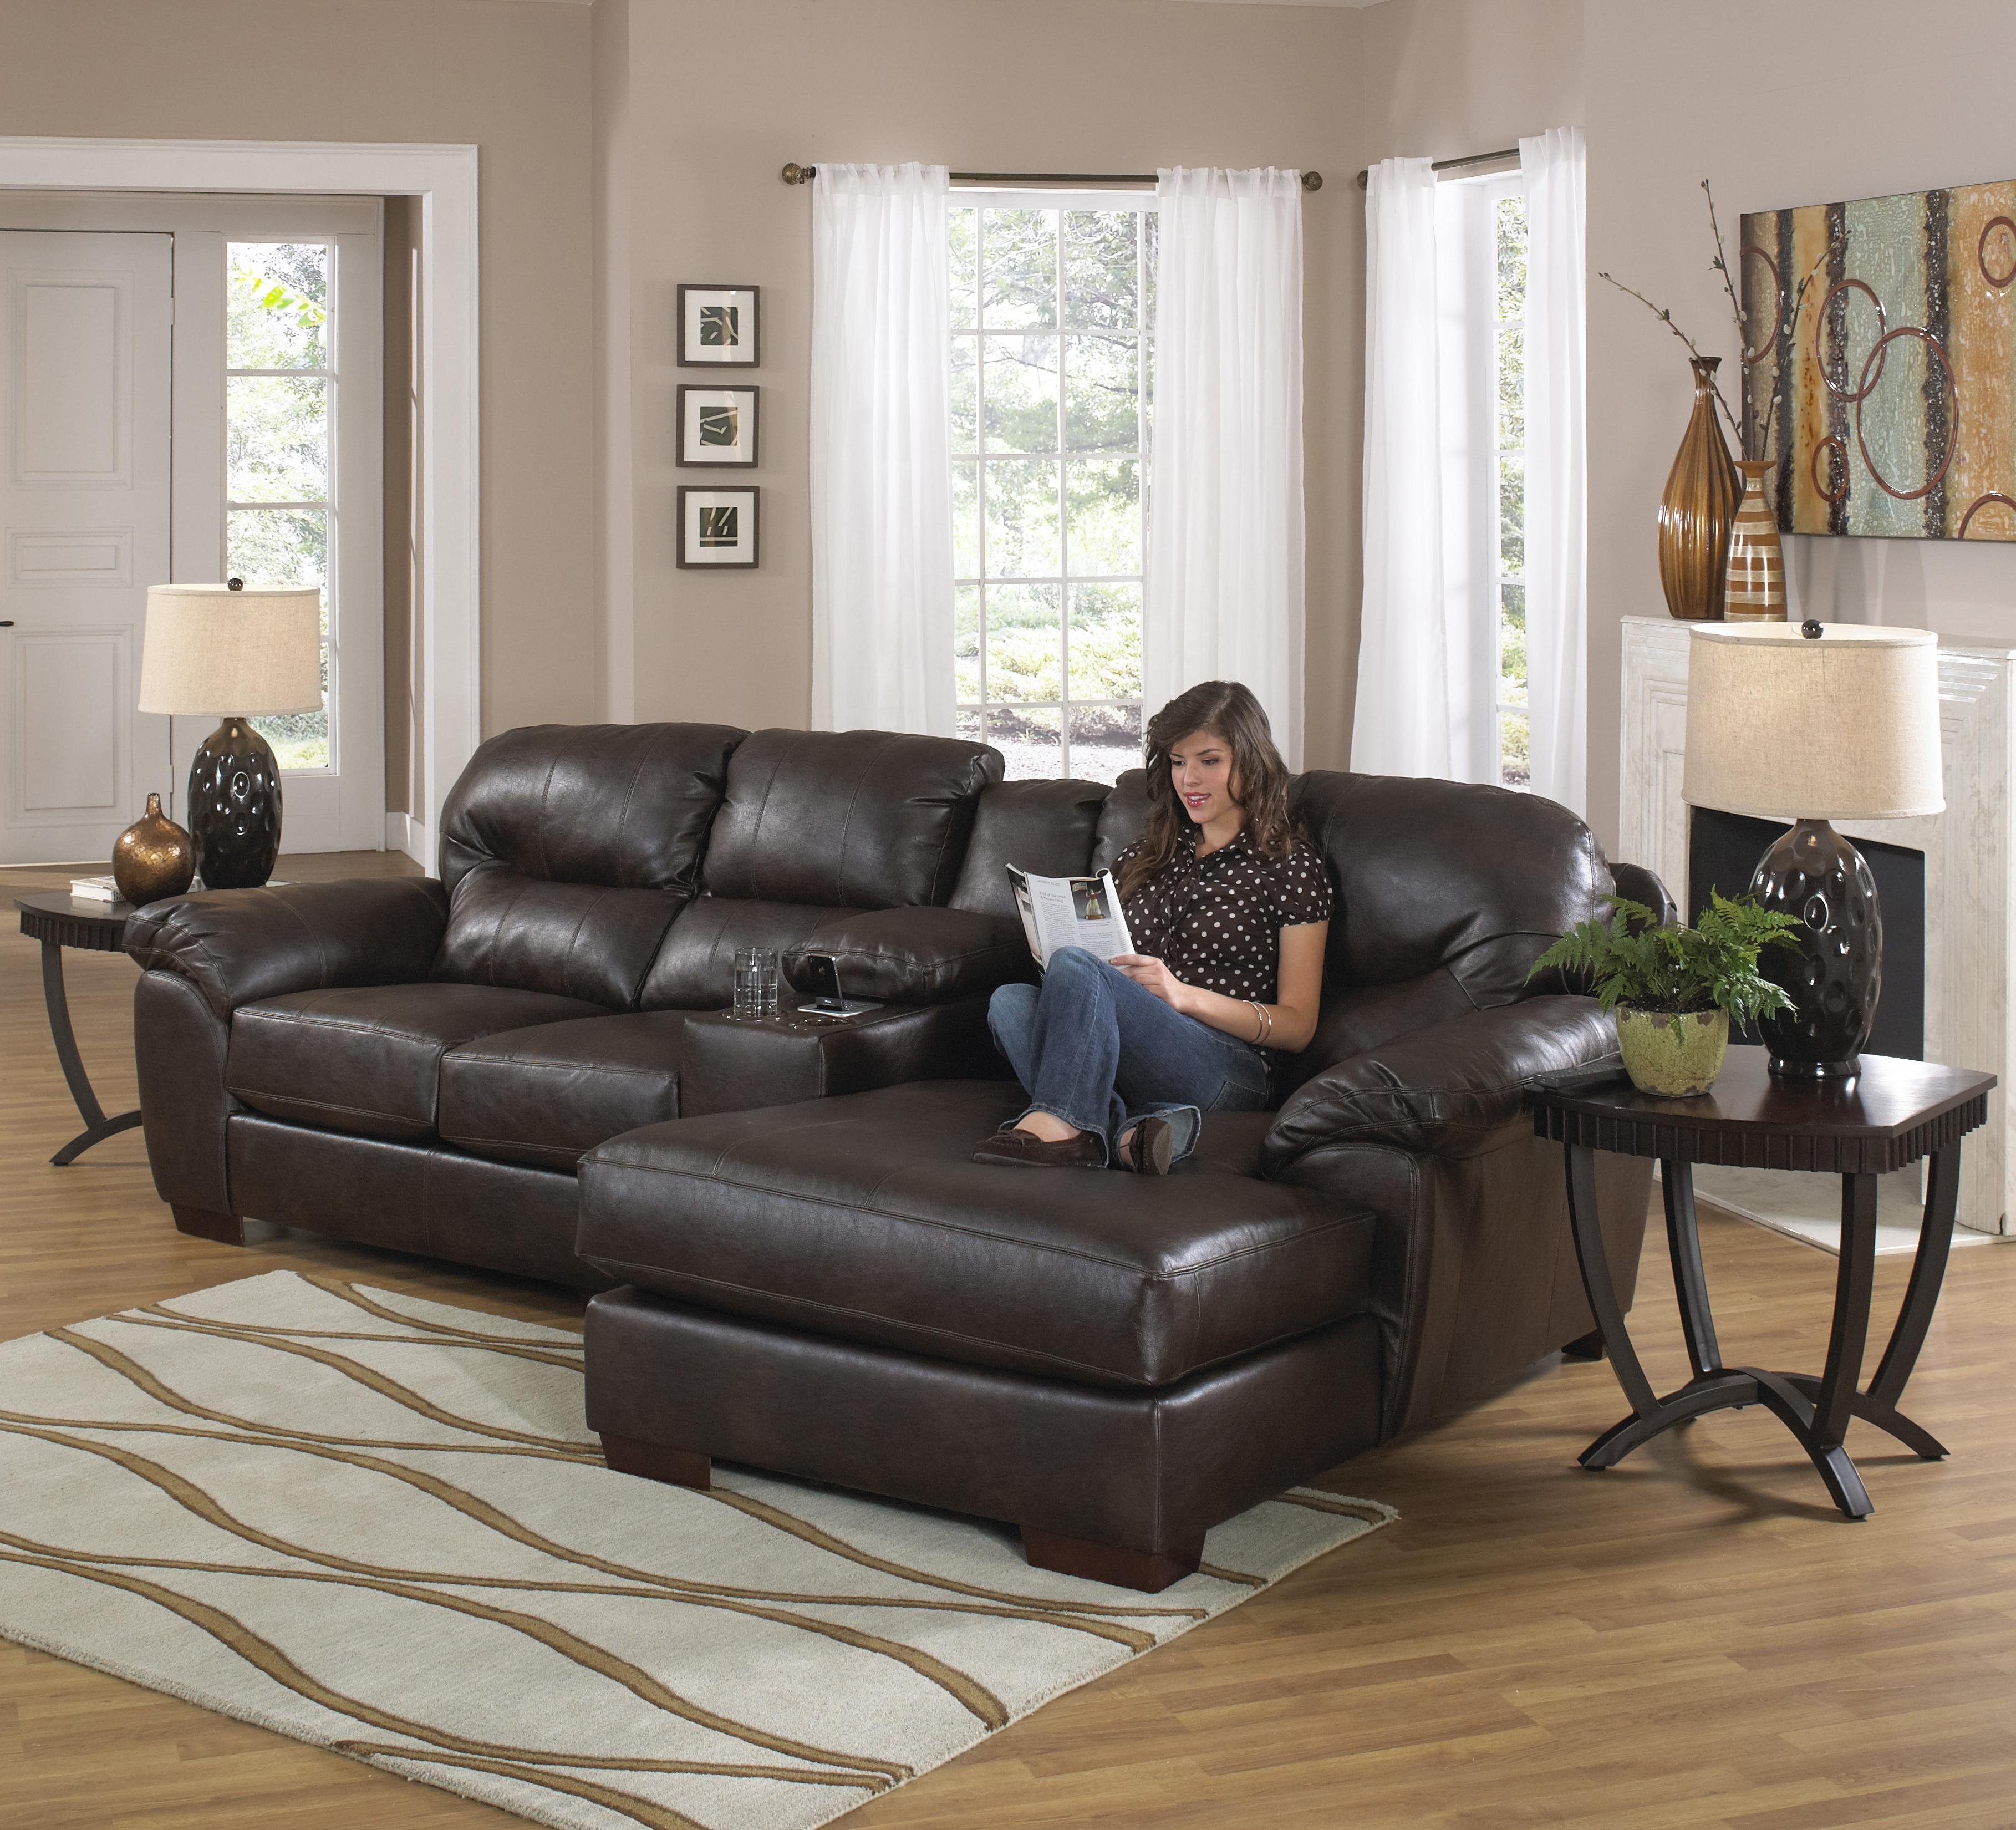 Jackson Furniture Lawson Two Chaise Sectional Sofa With Five Total Inside Jackson 6 Piece Power Reclining Sectionals With Sleeper (View 13 of 25)